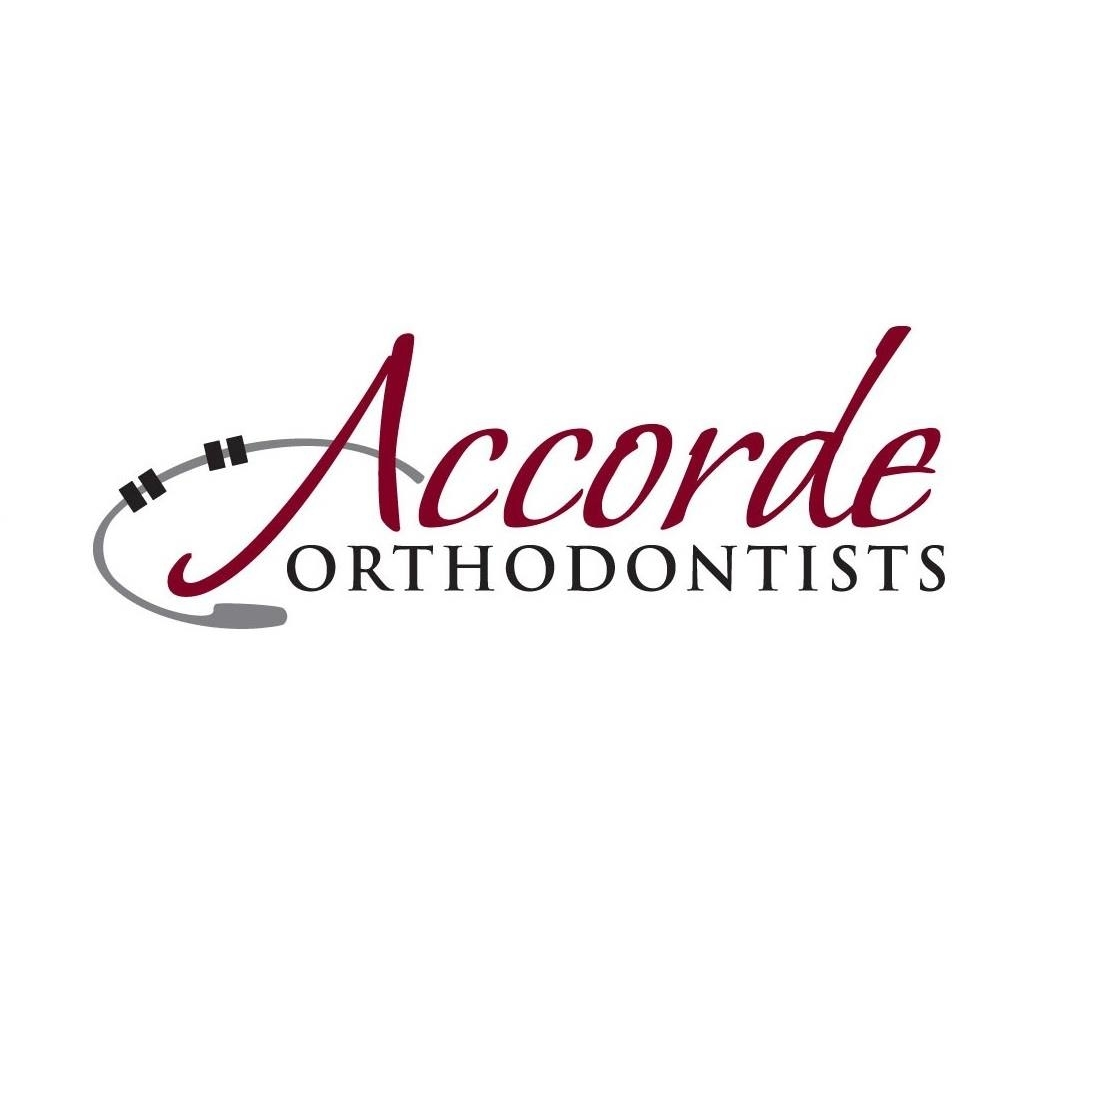 Accorde Orthodontists - Maple Grove, MN - Dentists & Dental Services